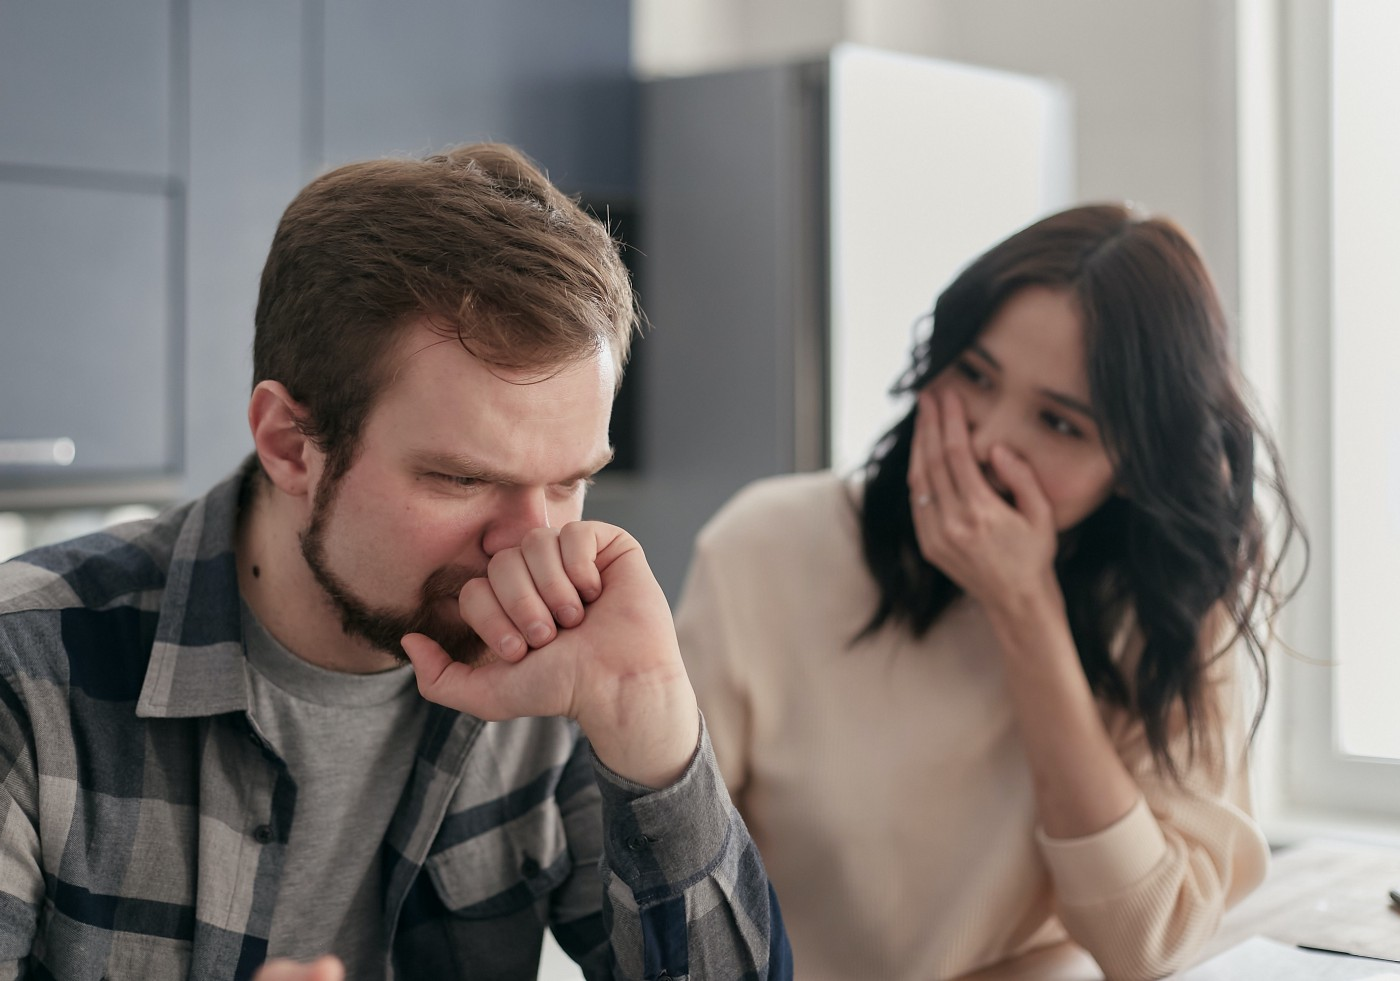 frowning man and woman with a hand over her mouth in shock